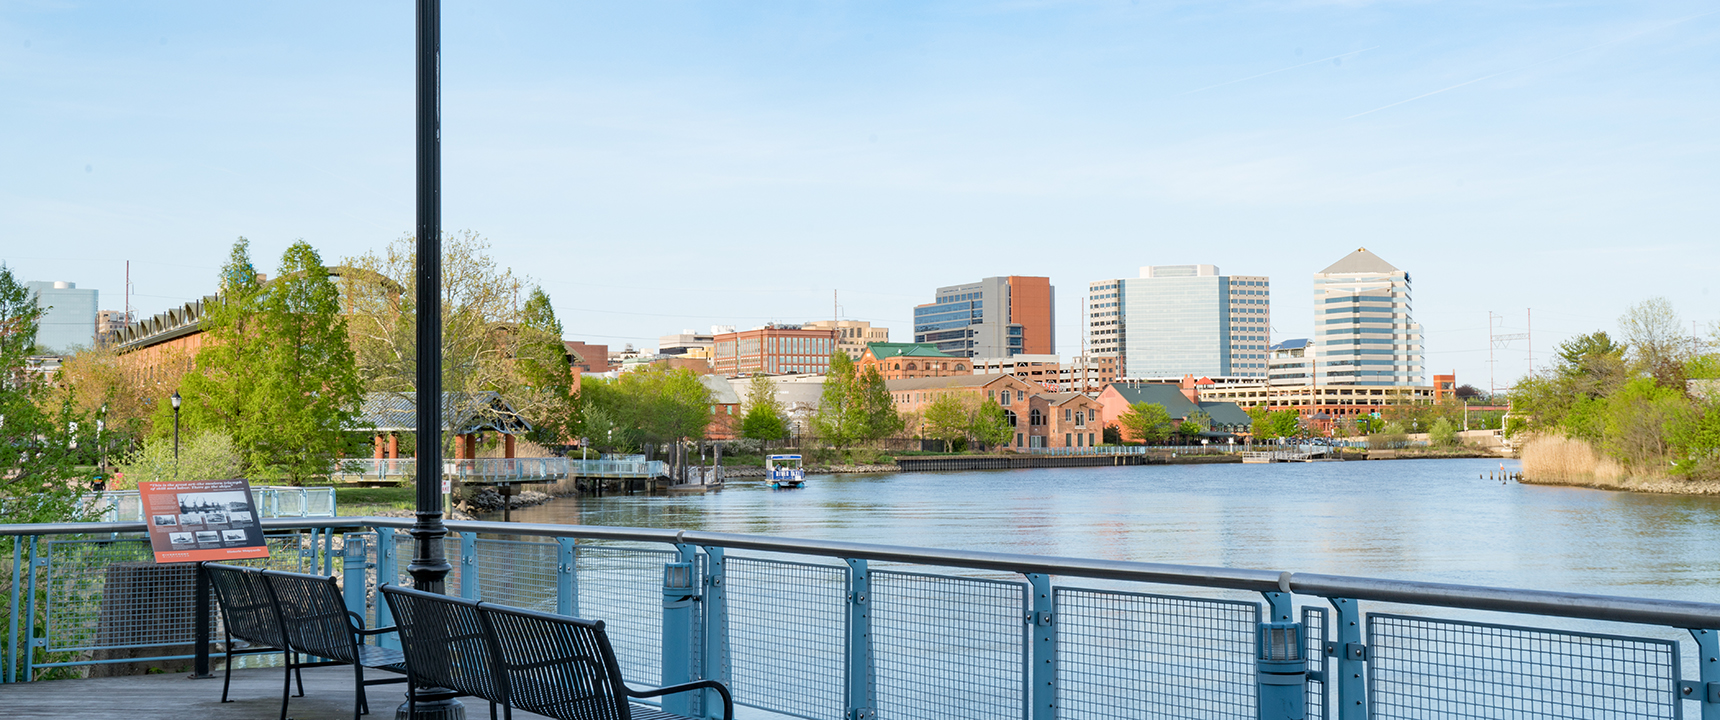 Photo of Wilmington, Deleware where the Mid-Atlantic Business Center is located.